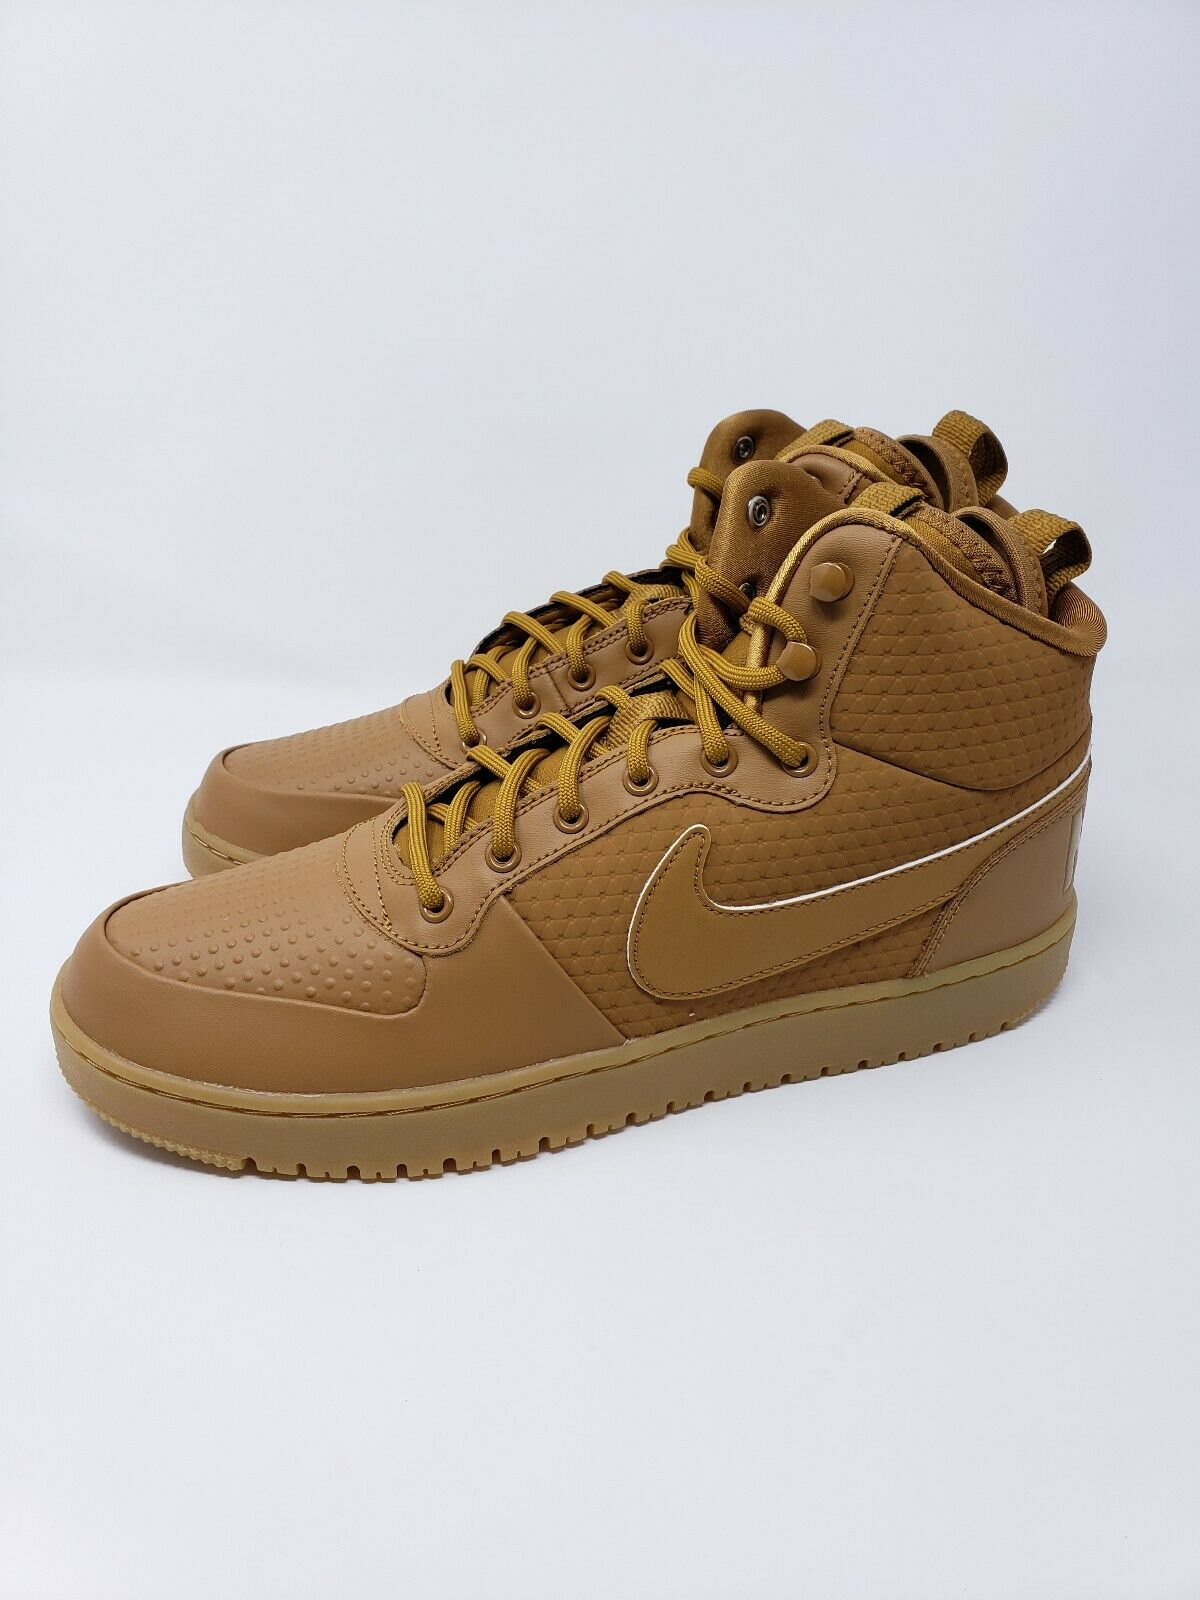 Nike Court Bgoldugh Mid Winter Wheat AA0547-700 Mens shoes Size 10.5 New with Box